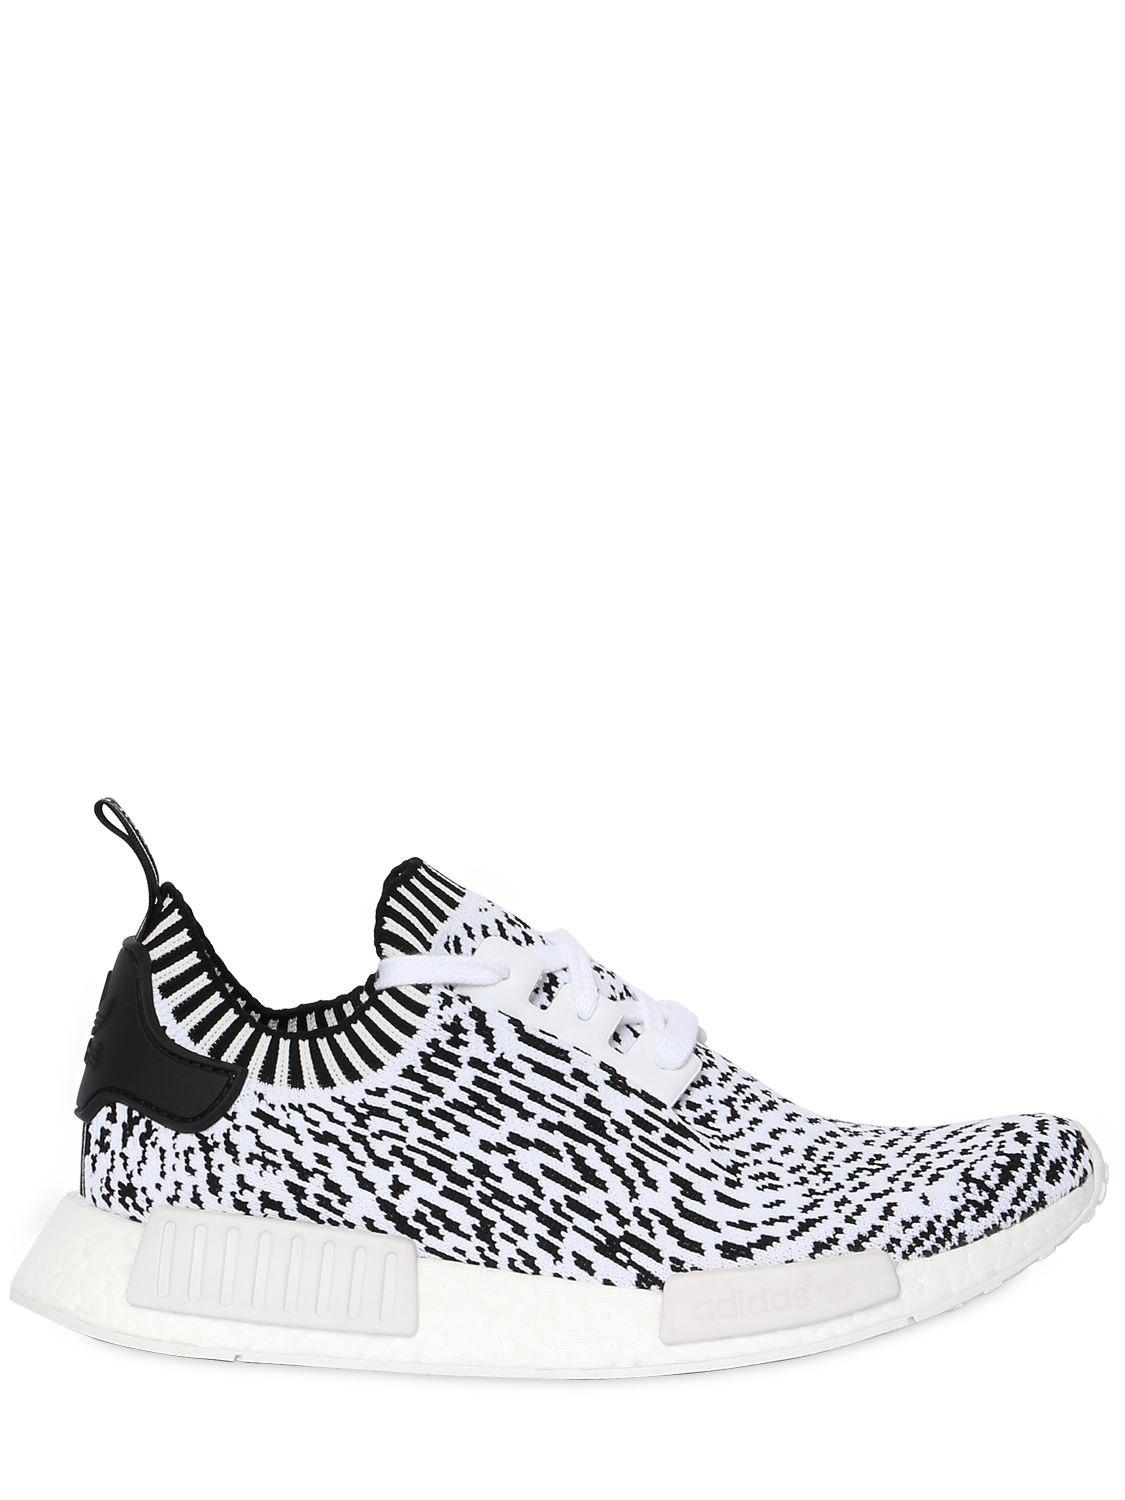 5d45730bd adidas Originals Nmd R1 Primeknit Sneakers in White for Men - Lyst